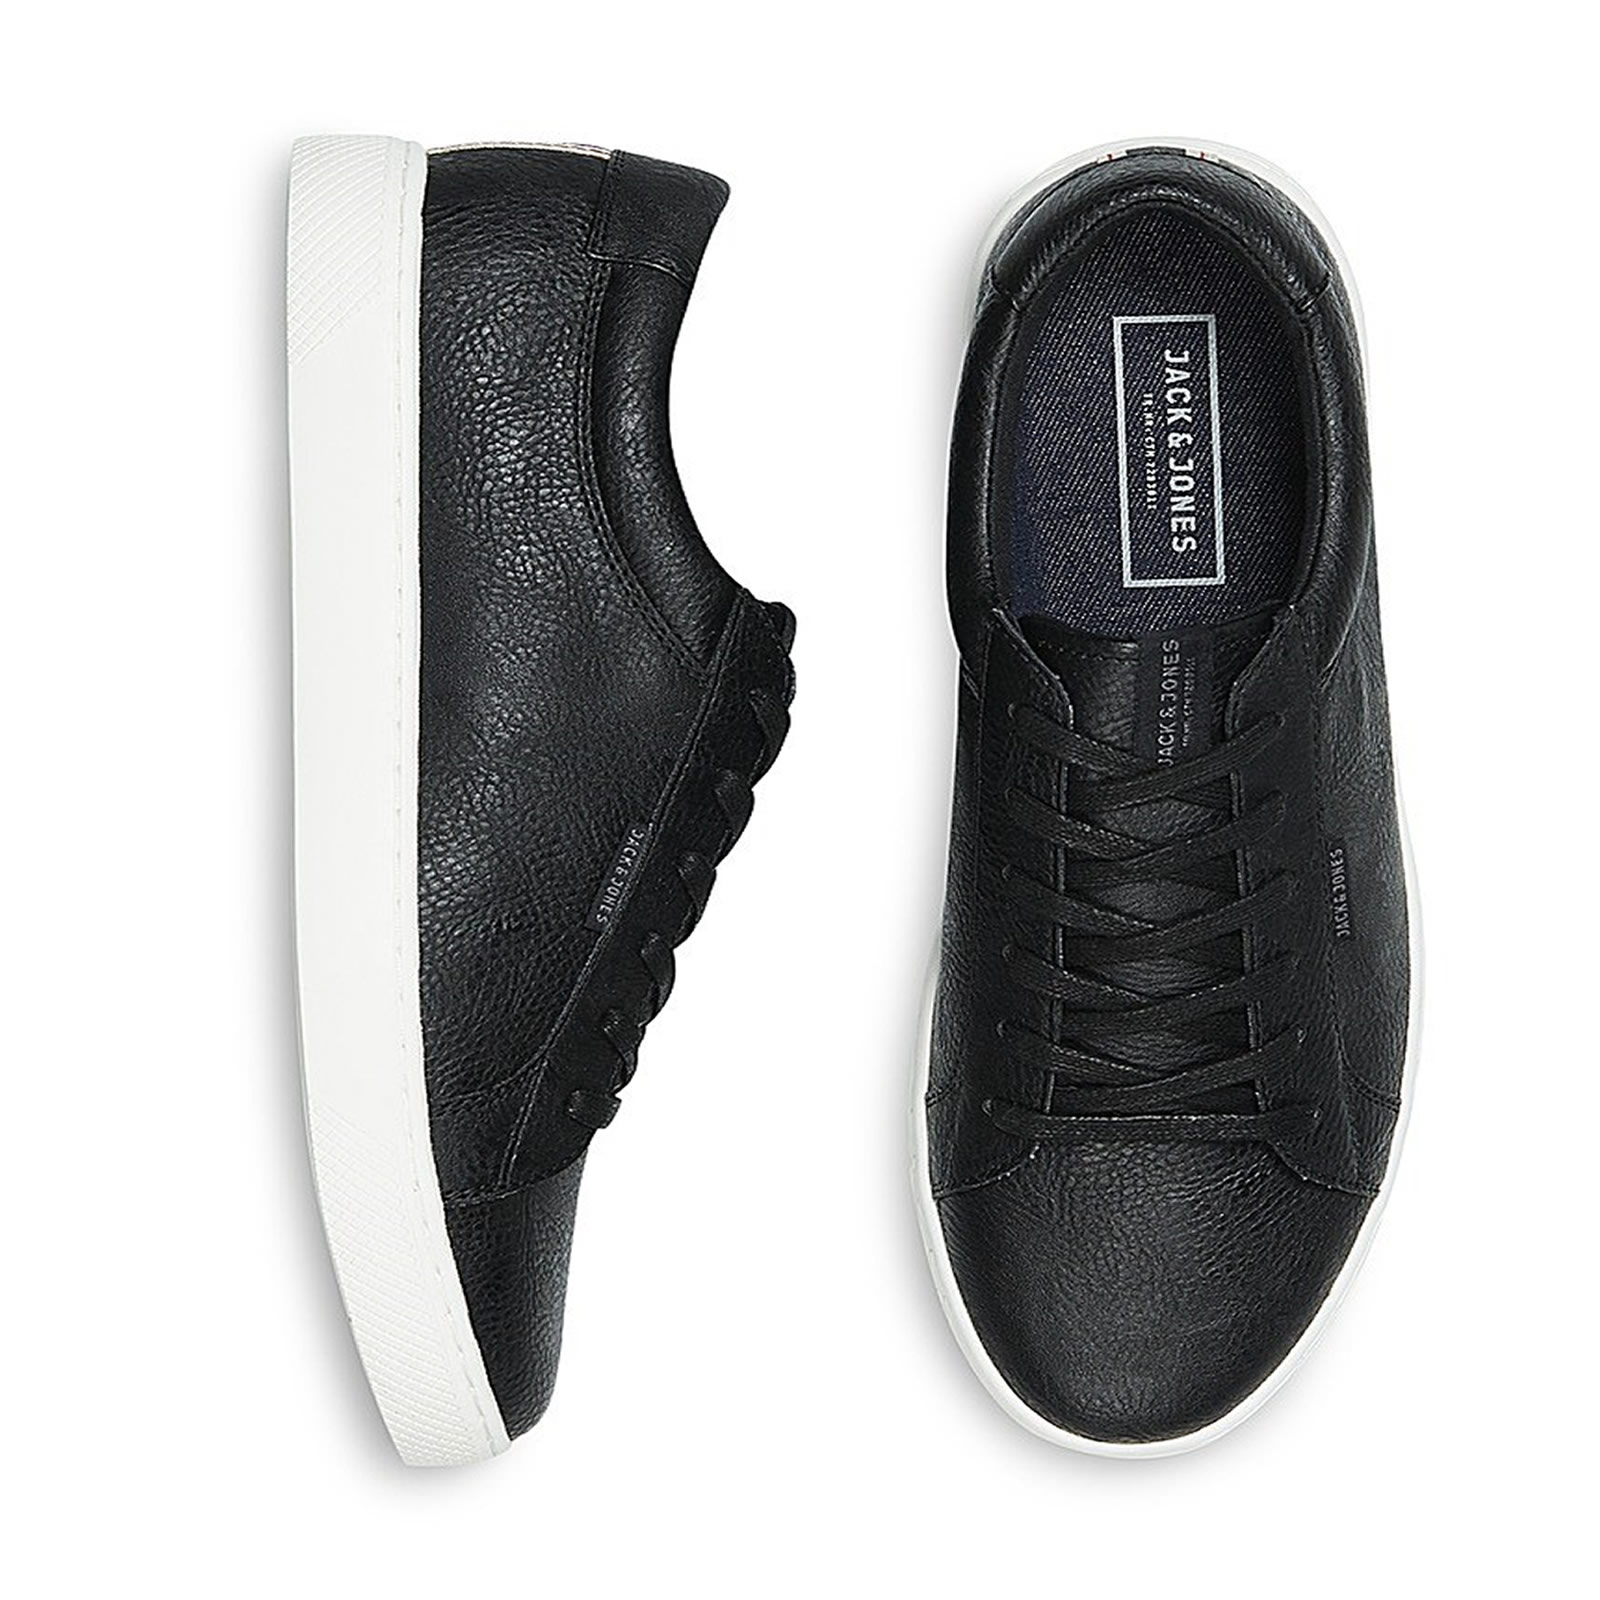 cddb96a0cf09ab Mens Trainers Jack & Jones Sable Casual PU Lace up SNEAKERS ...